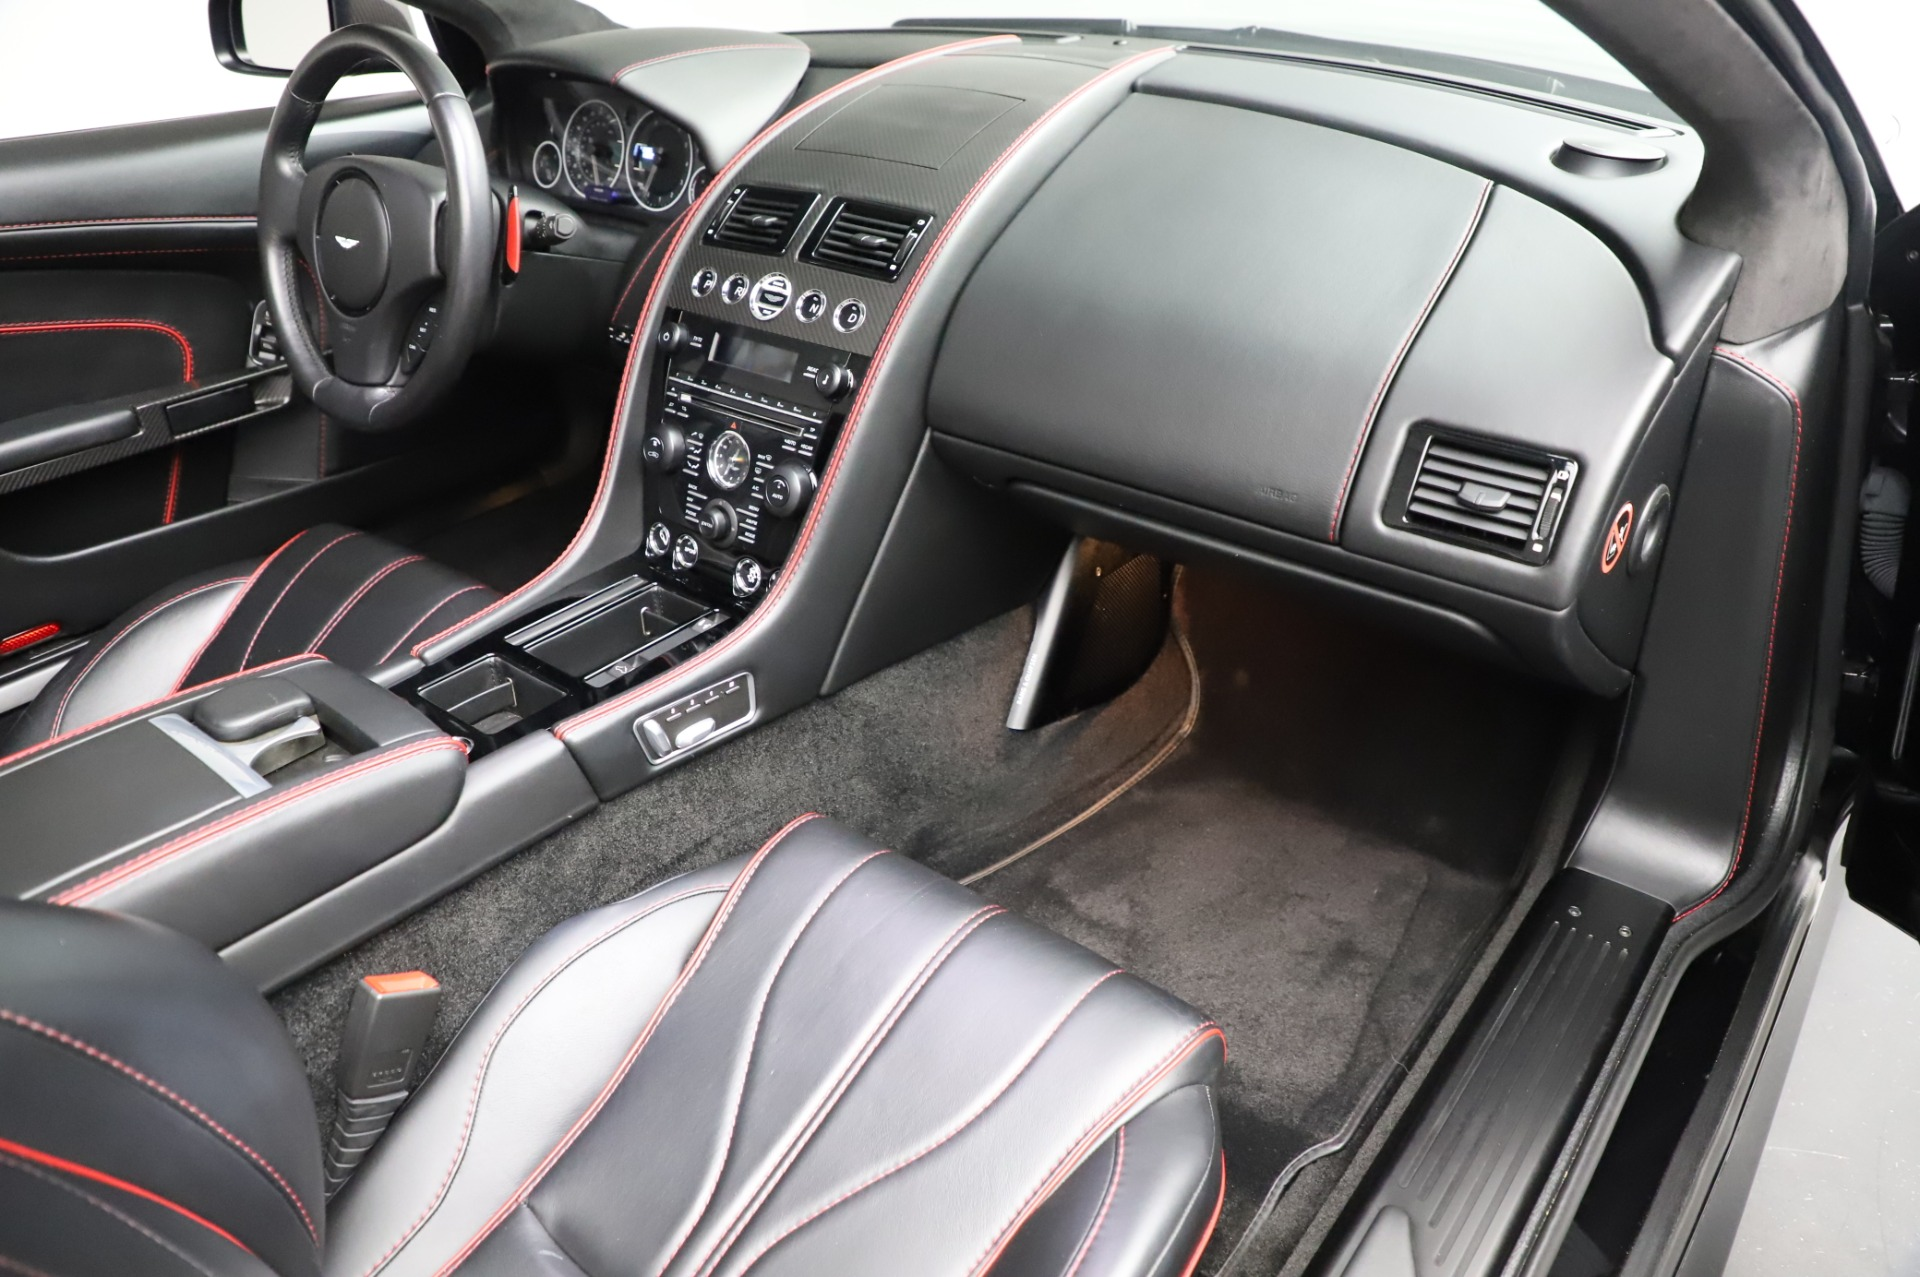 Used 2015 Aston Martin DB9 Carbon Edition Volante For Sale In Westport, CT 1919_p26